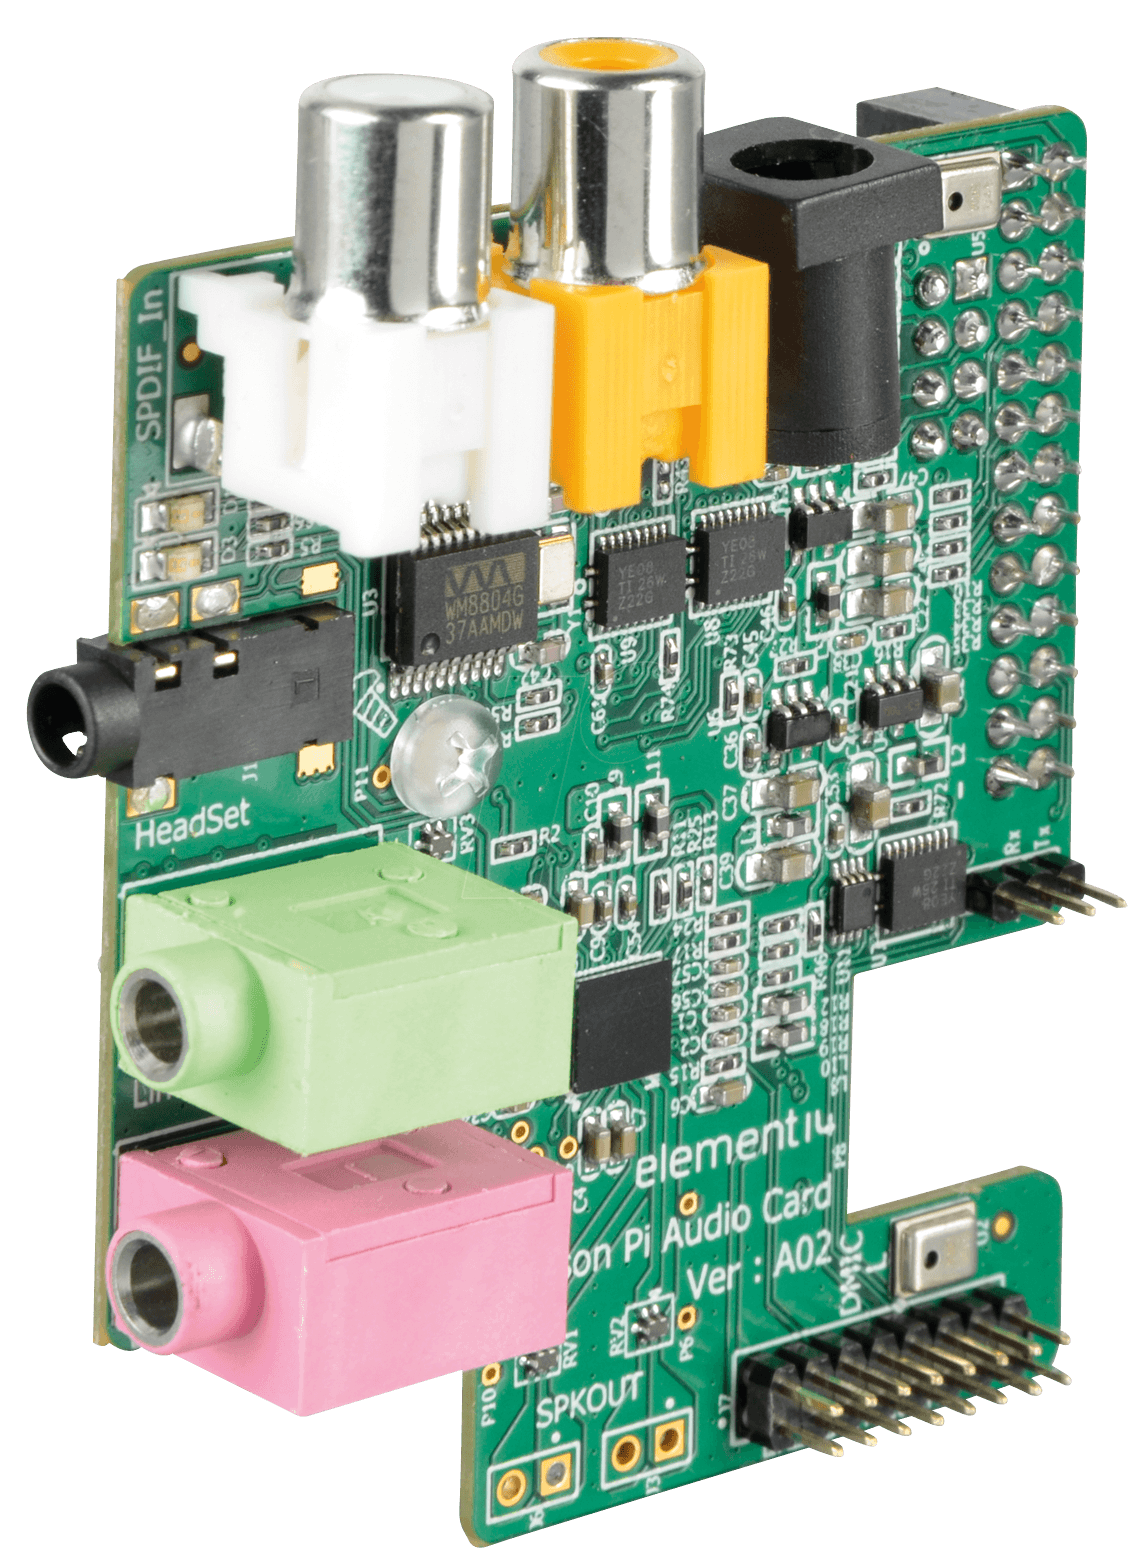 RASP WOLF AUDIO - AUDIO CARD for Raspberry Pi A or B